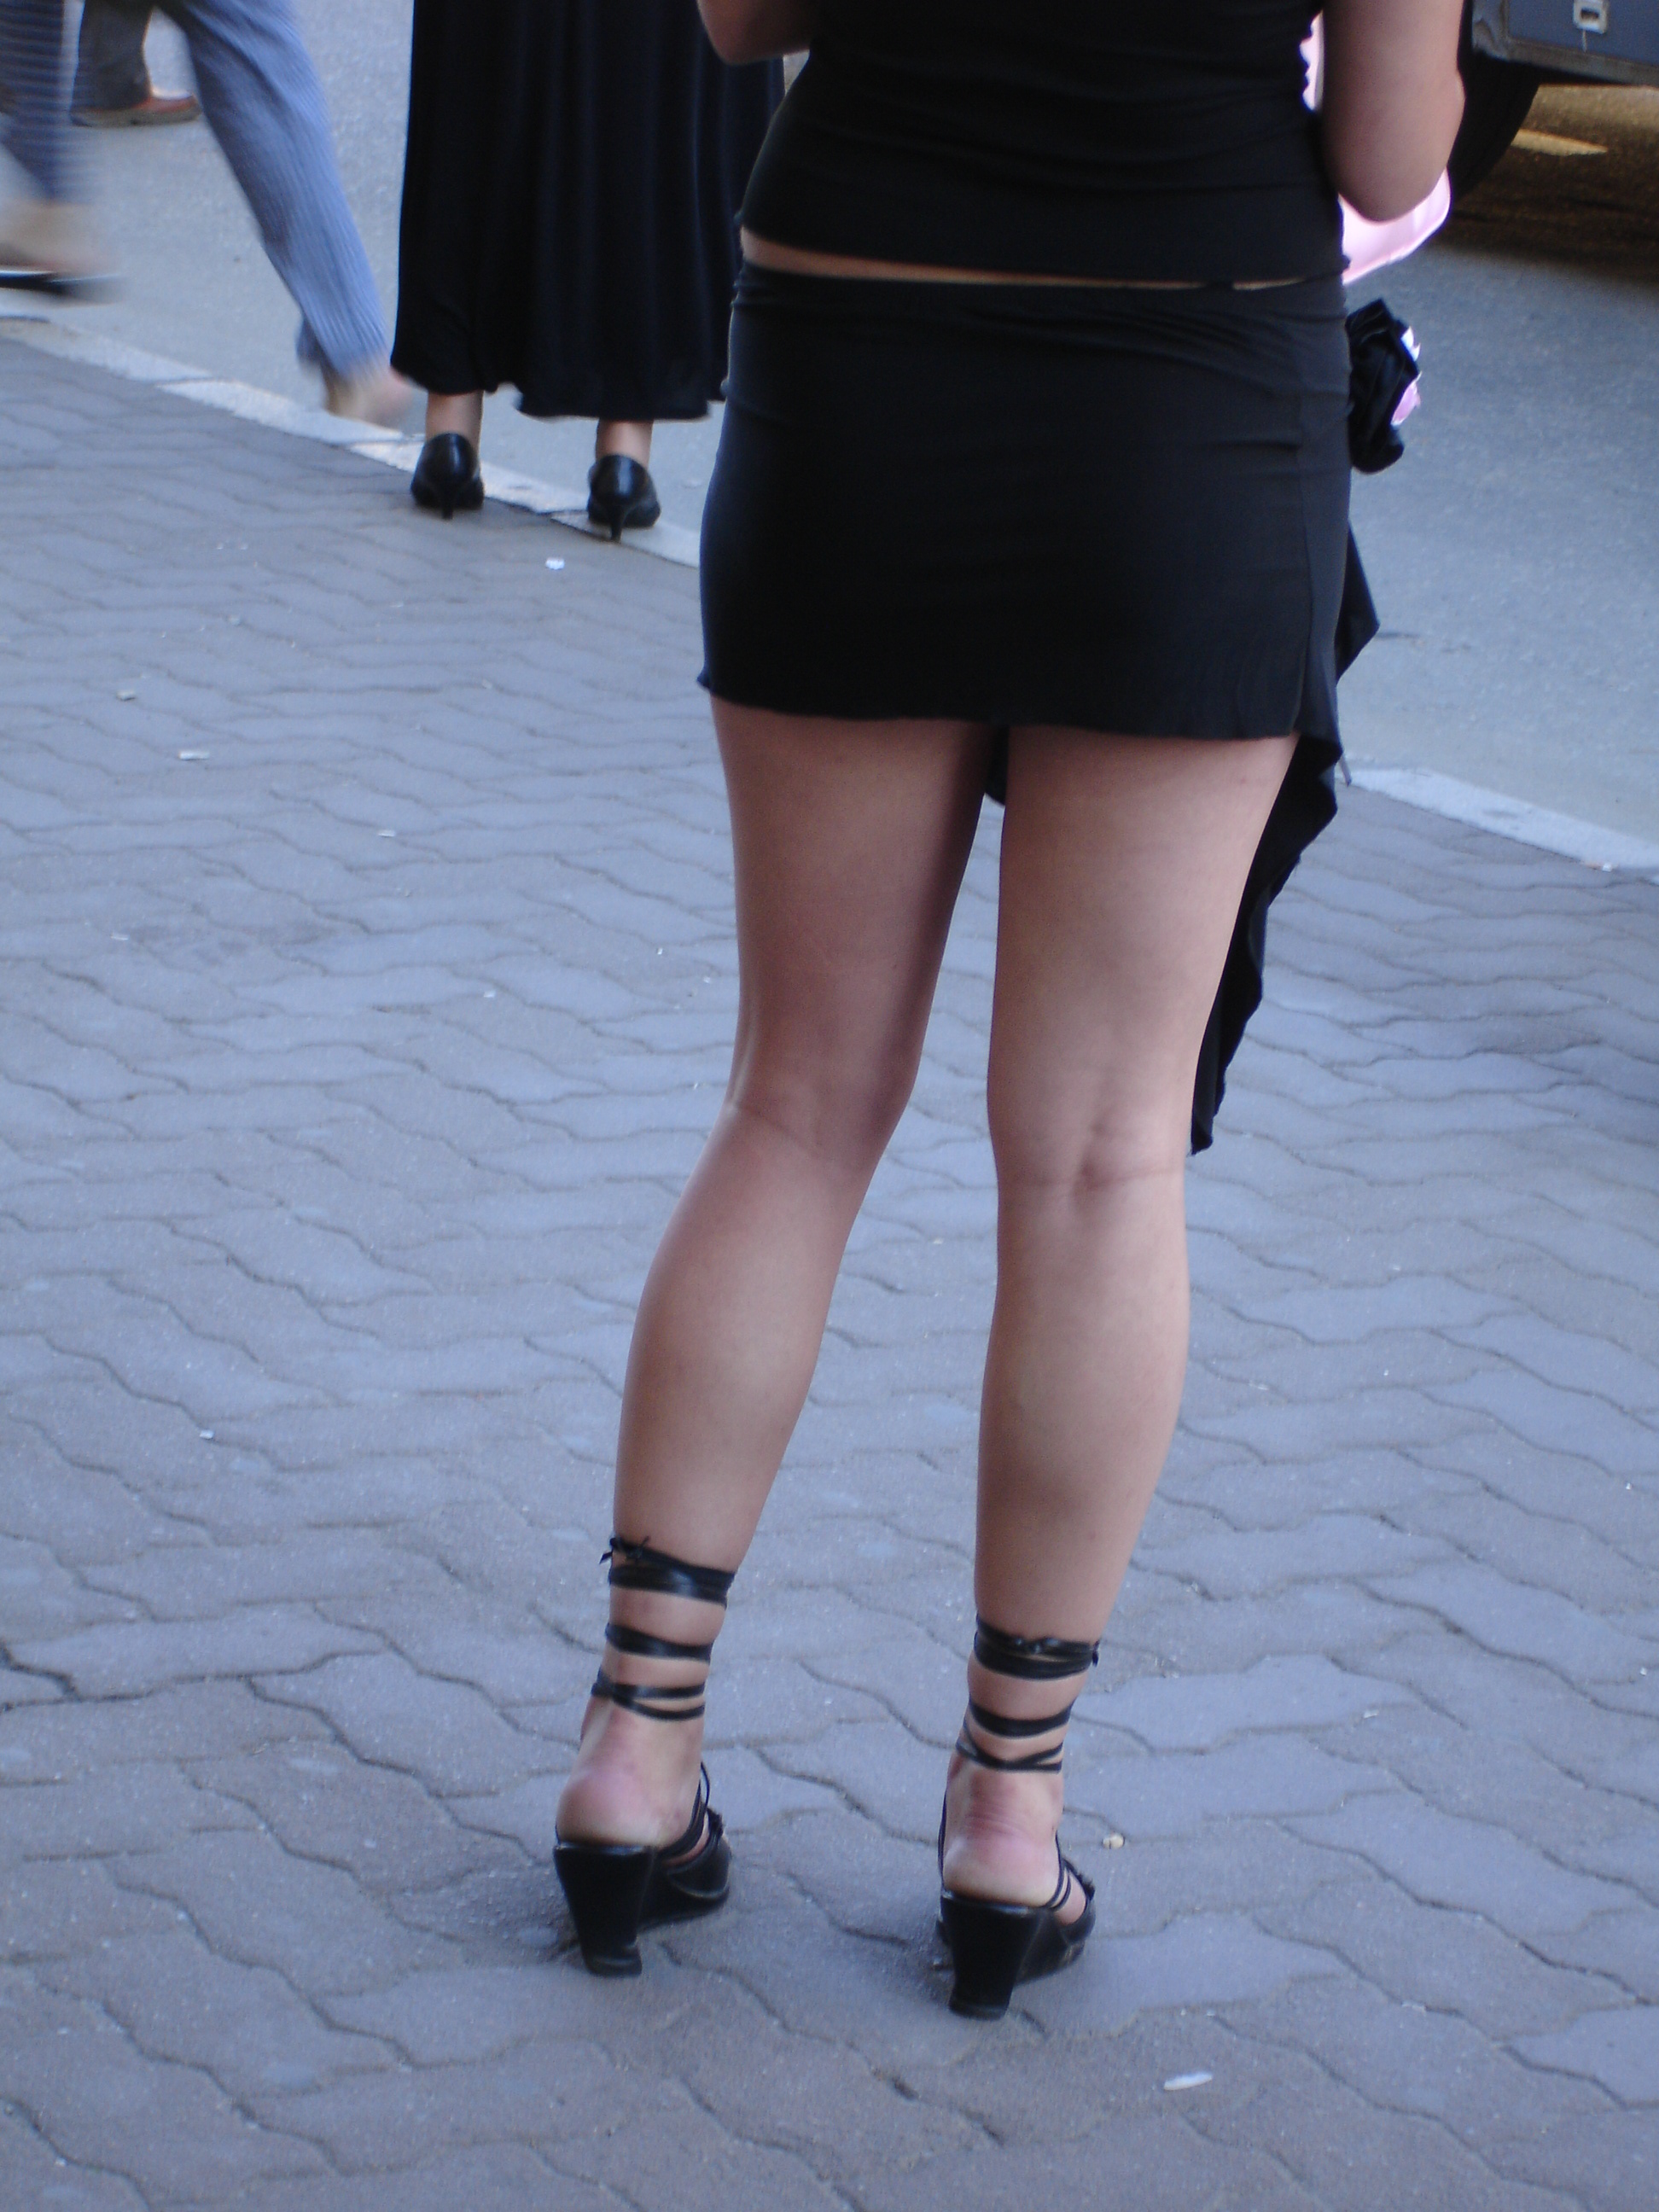 fileyoung woman in a miniskirt no one notices but me